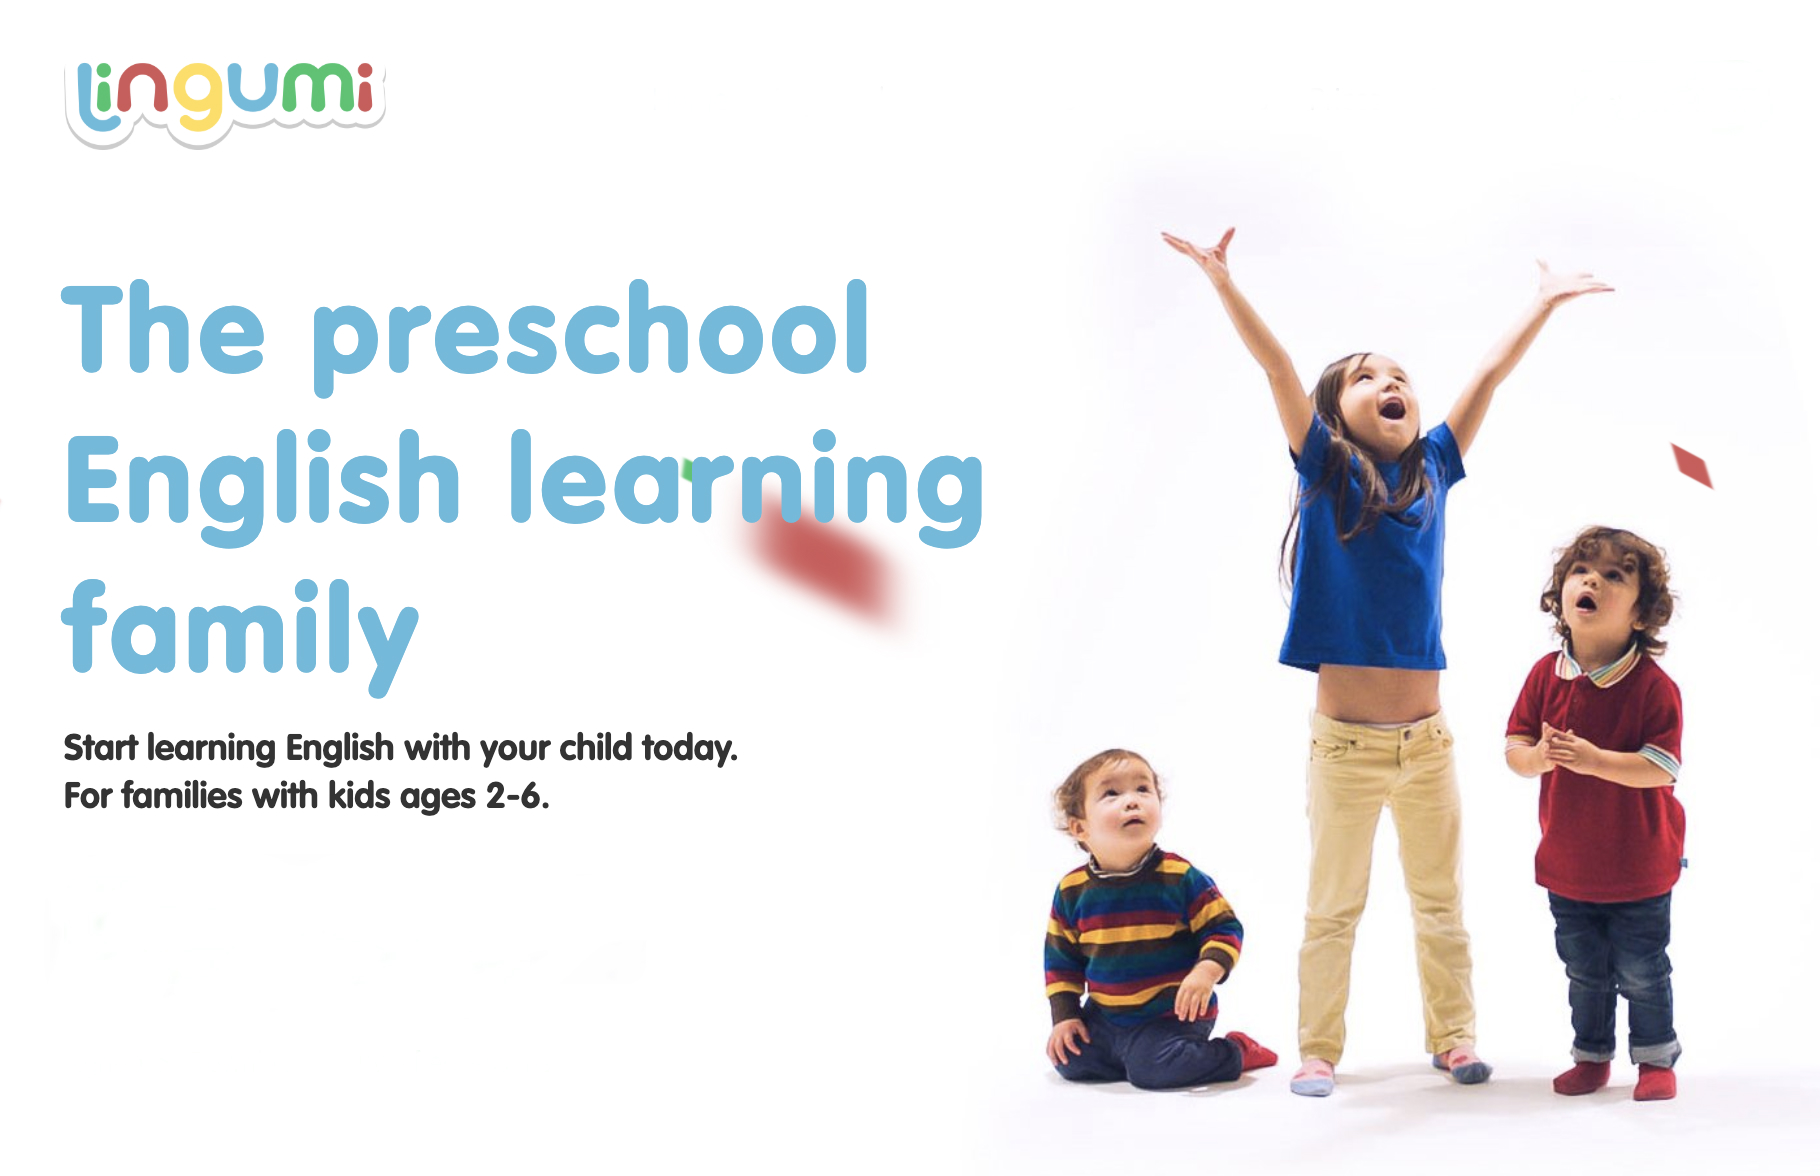 SoapBox Labs Powers Automated Assessments for Lingumi's Preschool English learning platform